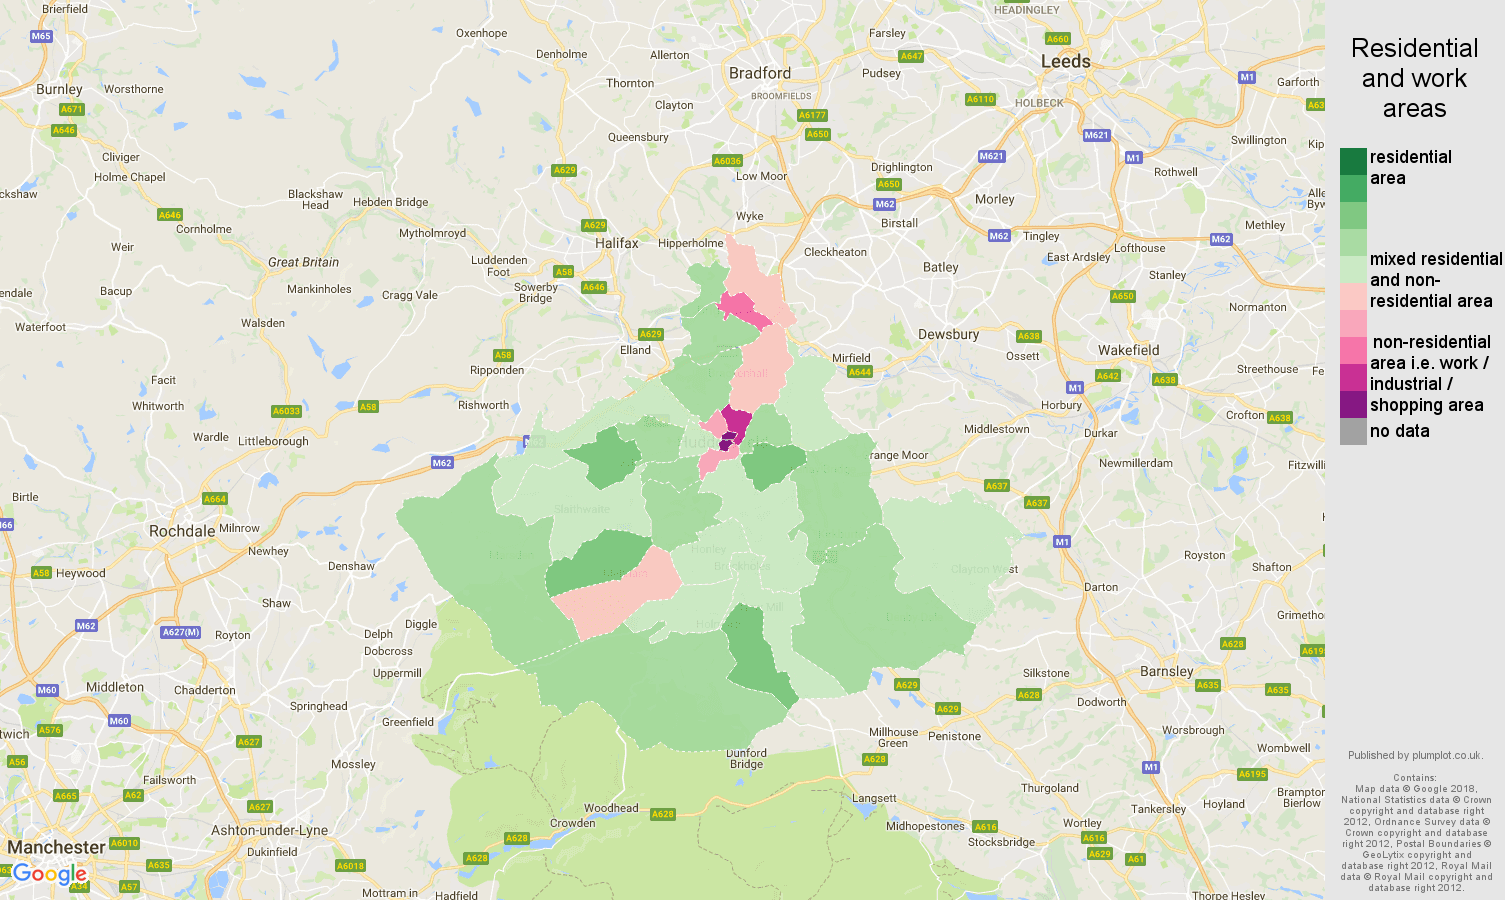 Huddersfield residential areas map